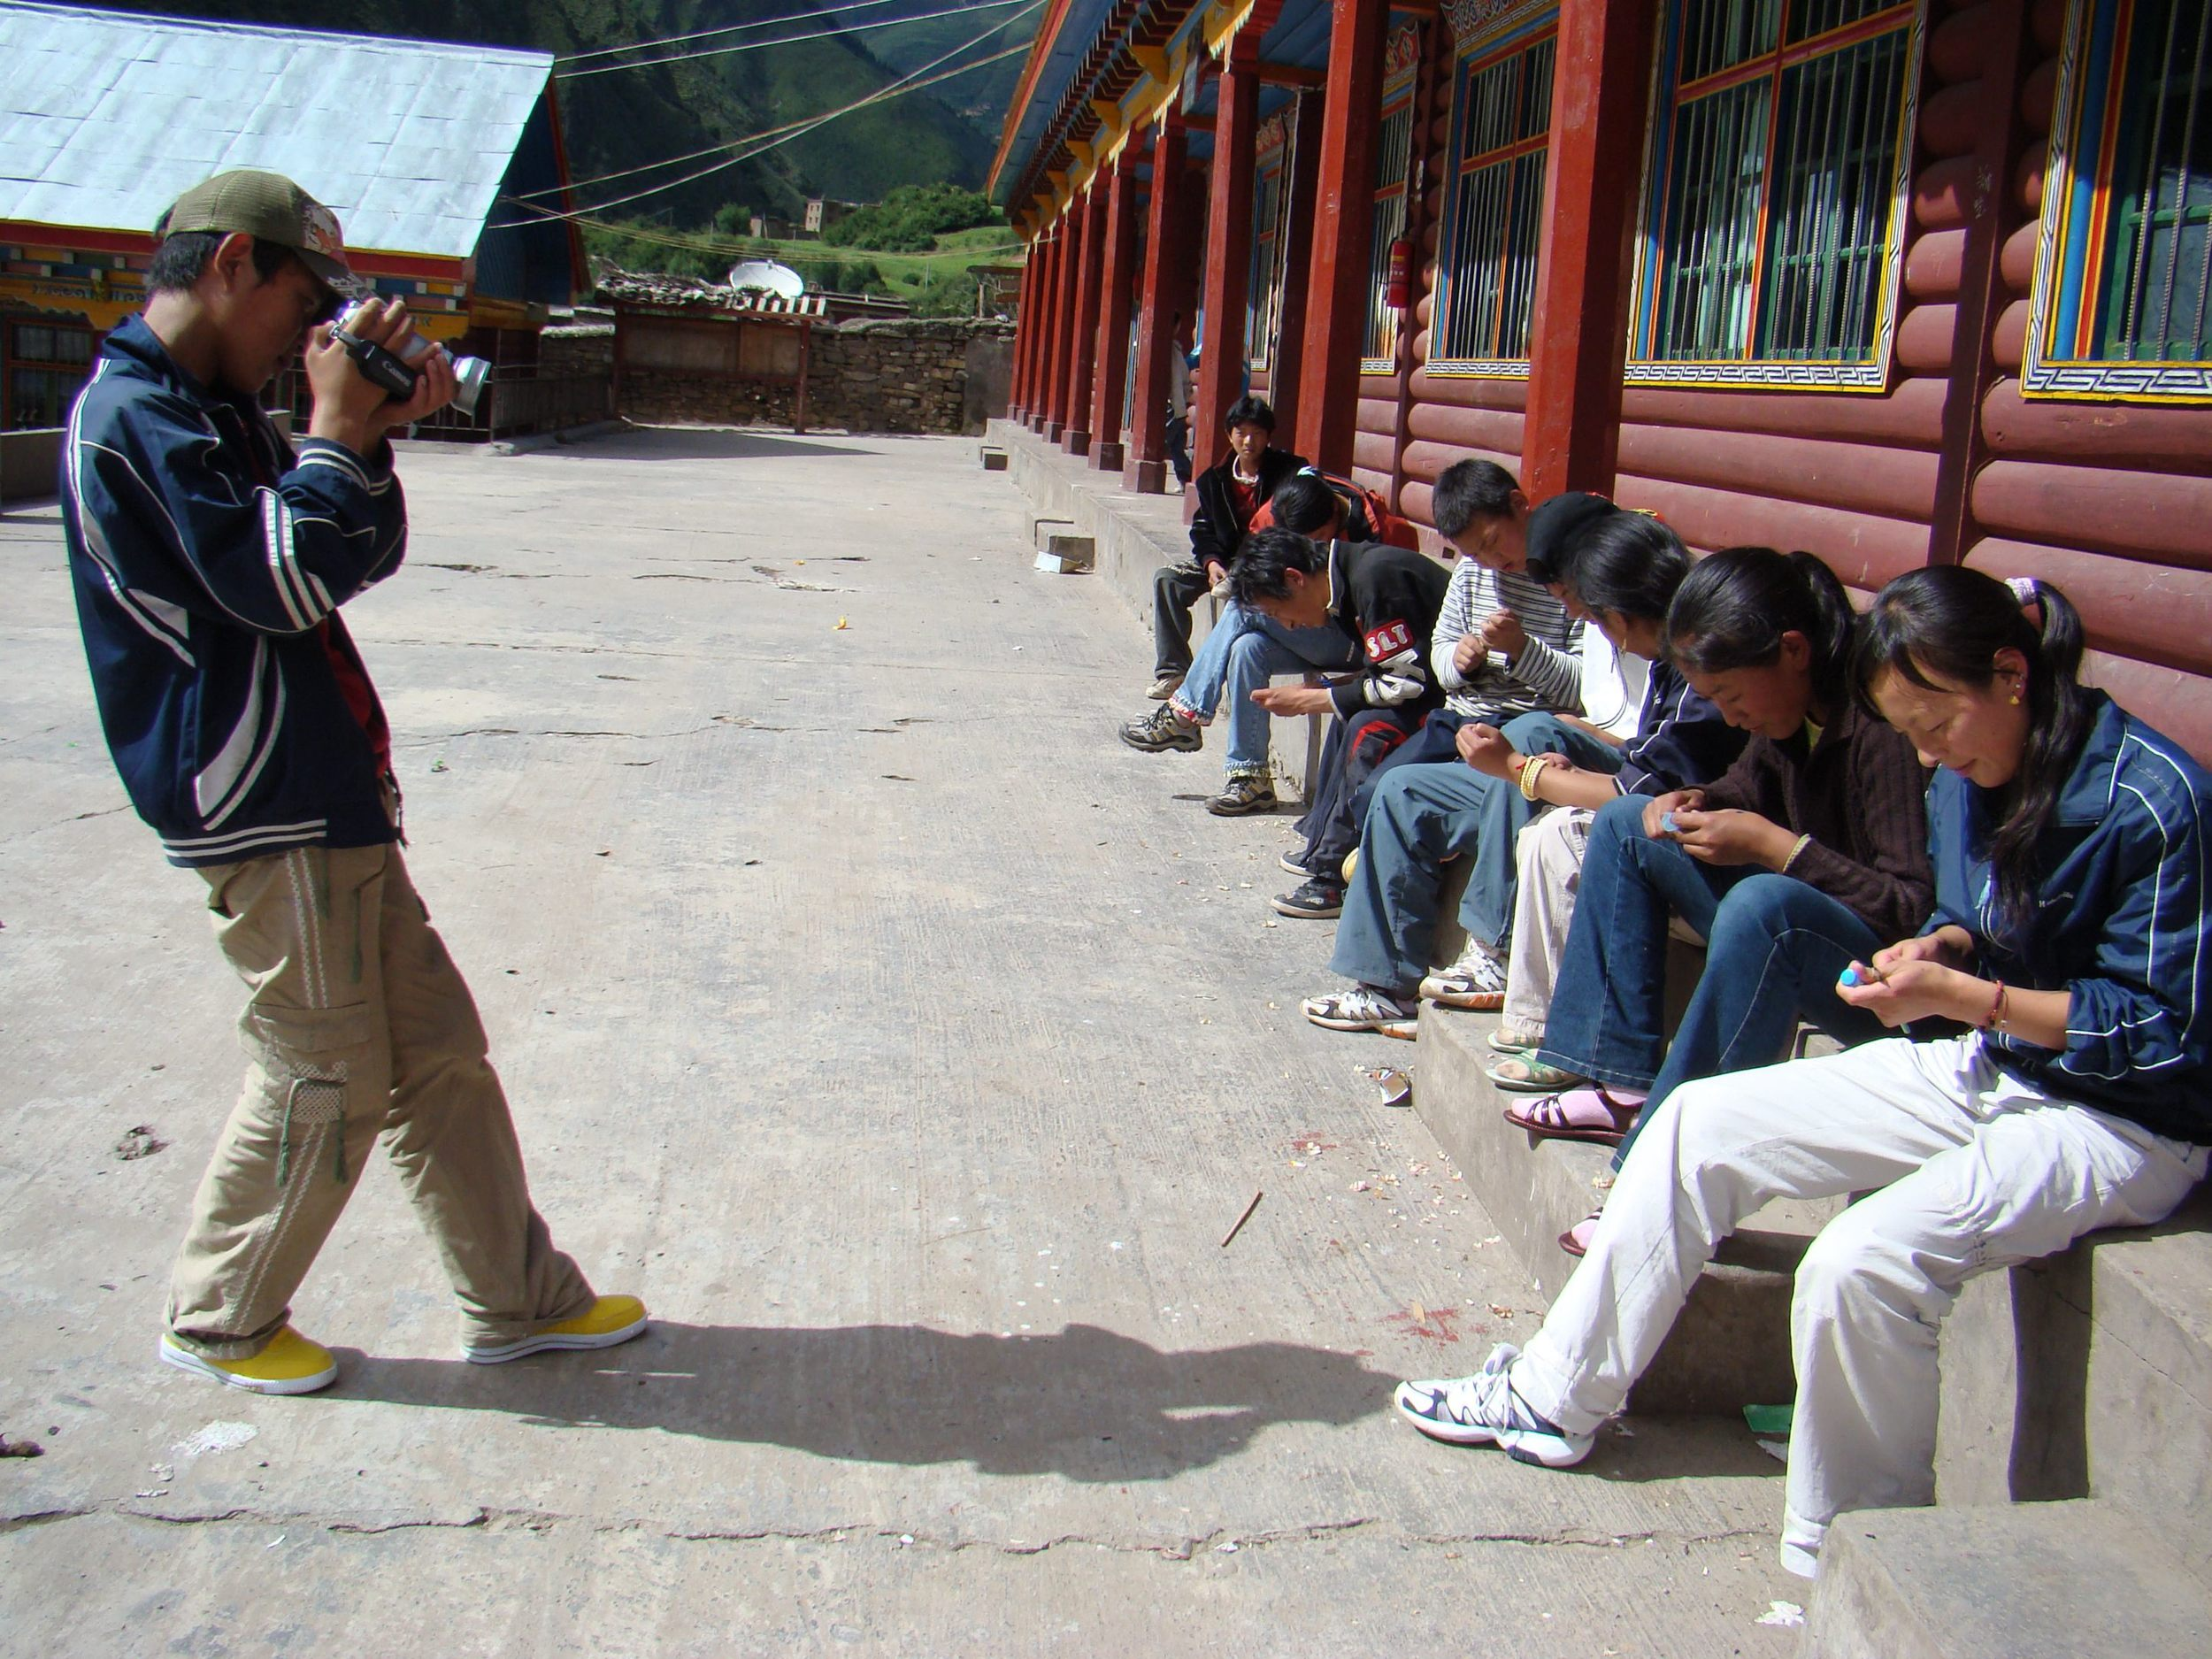 Dorjee Tashi films his classmates making wood carvings